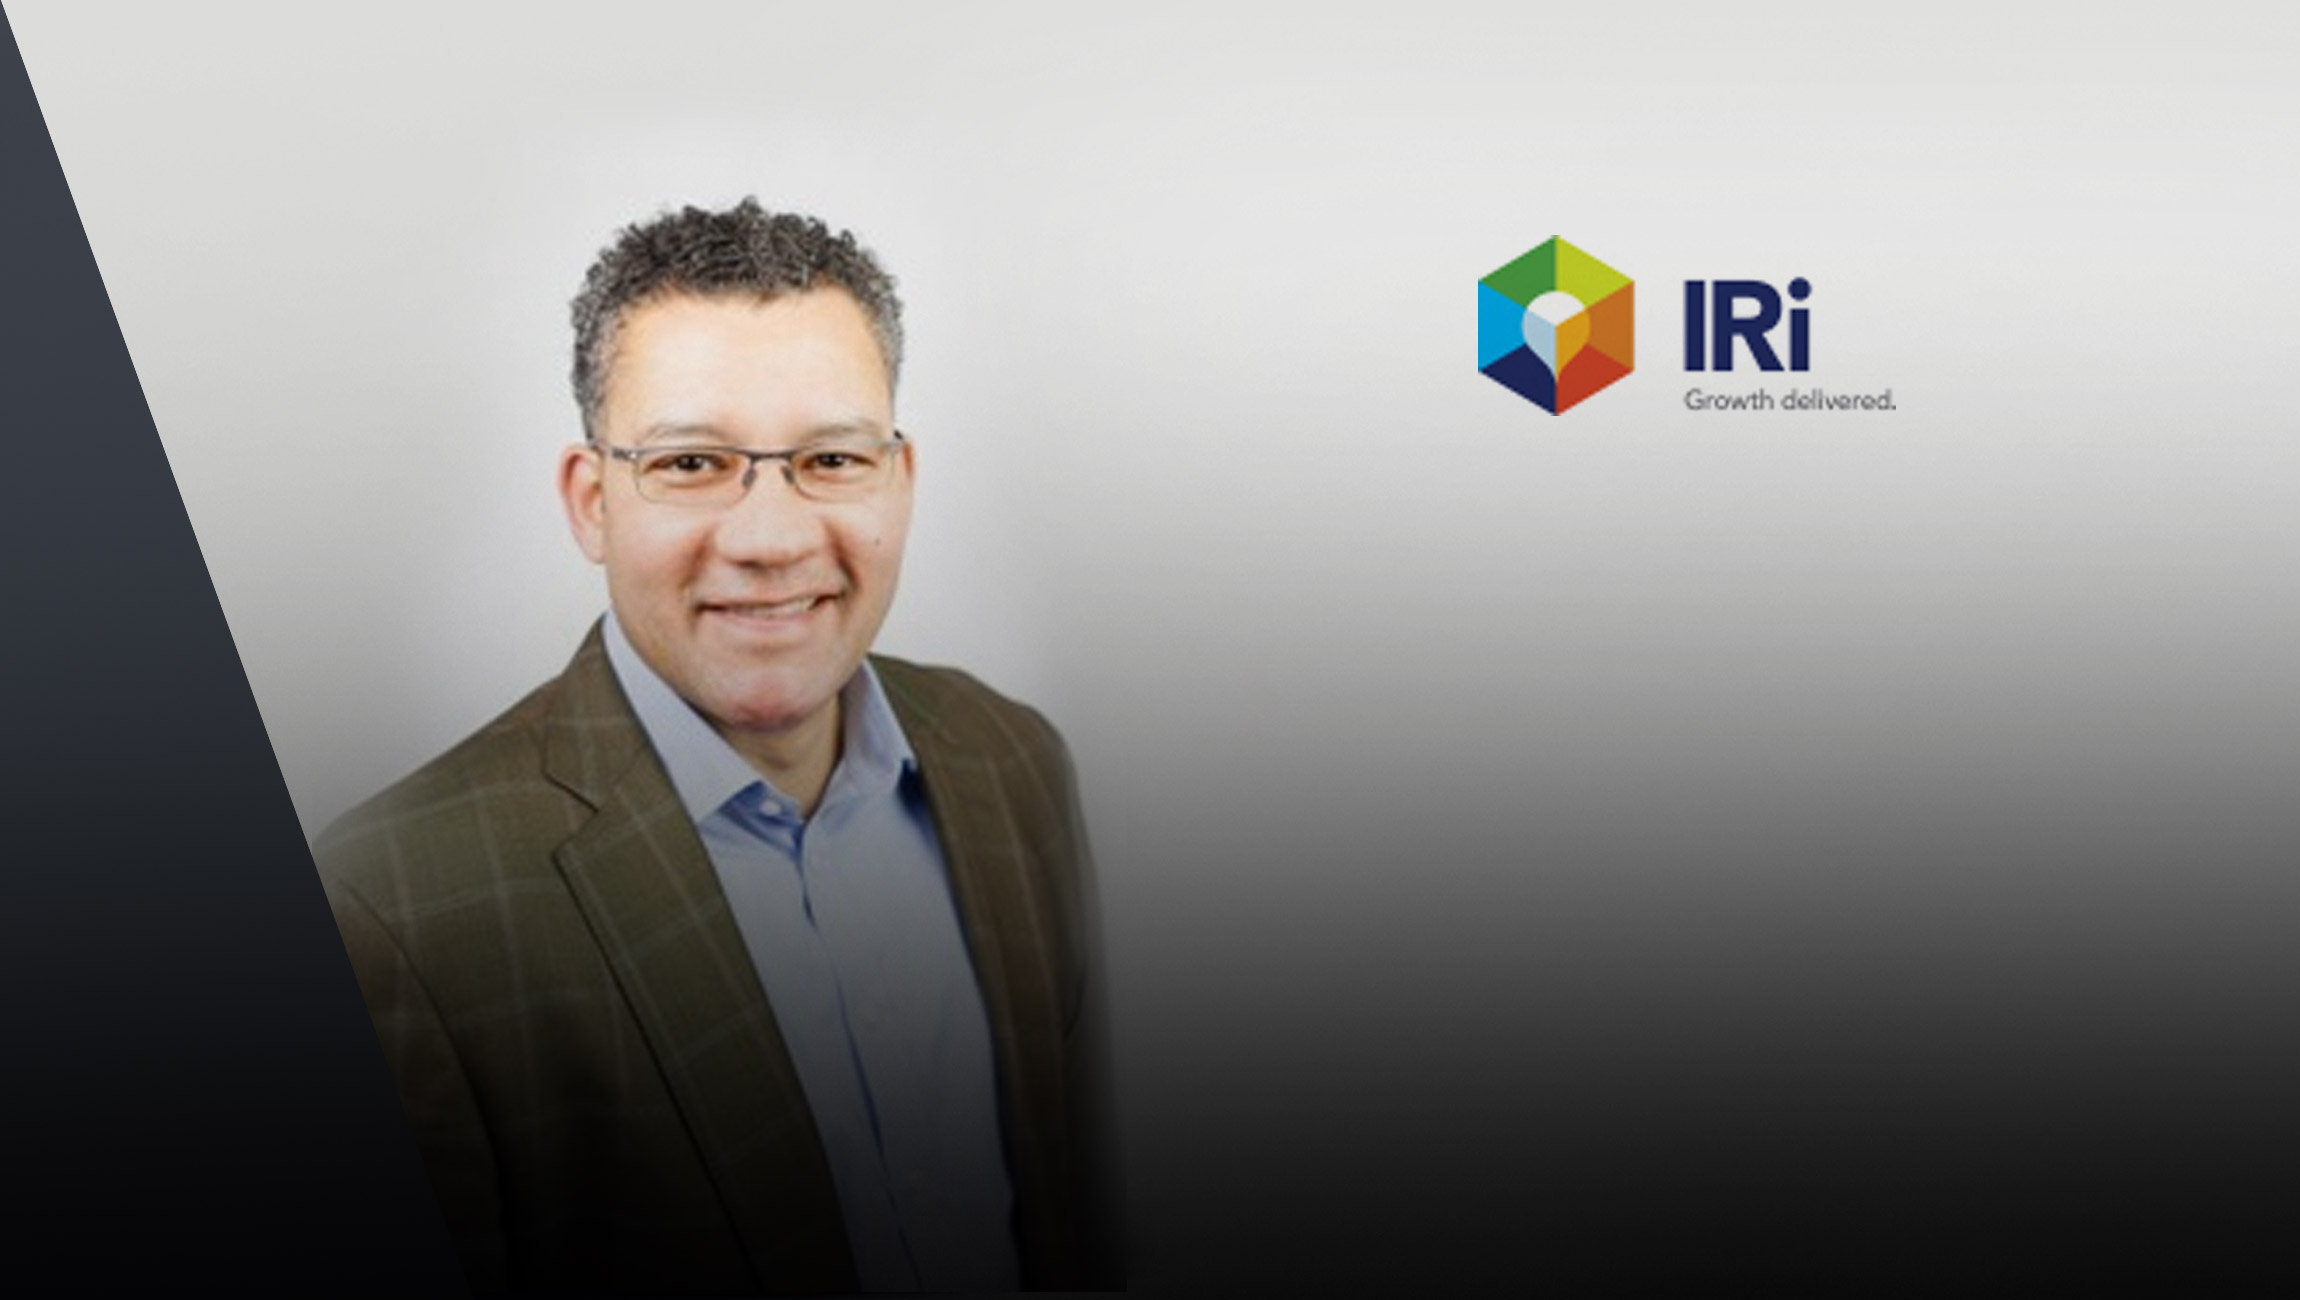 IRI Appoints Consumer Analytics Veteran Jeremy Allen as President, Market and Shopper Intelligence